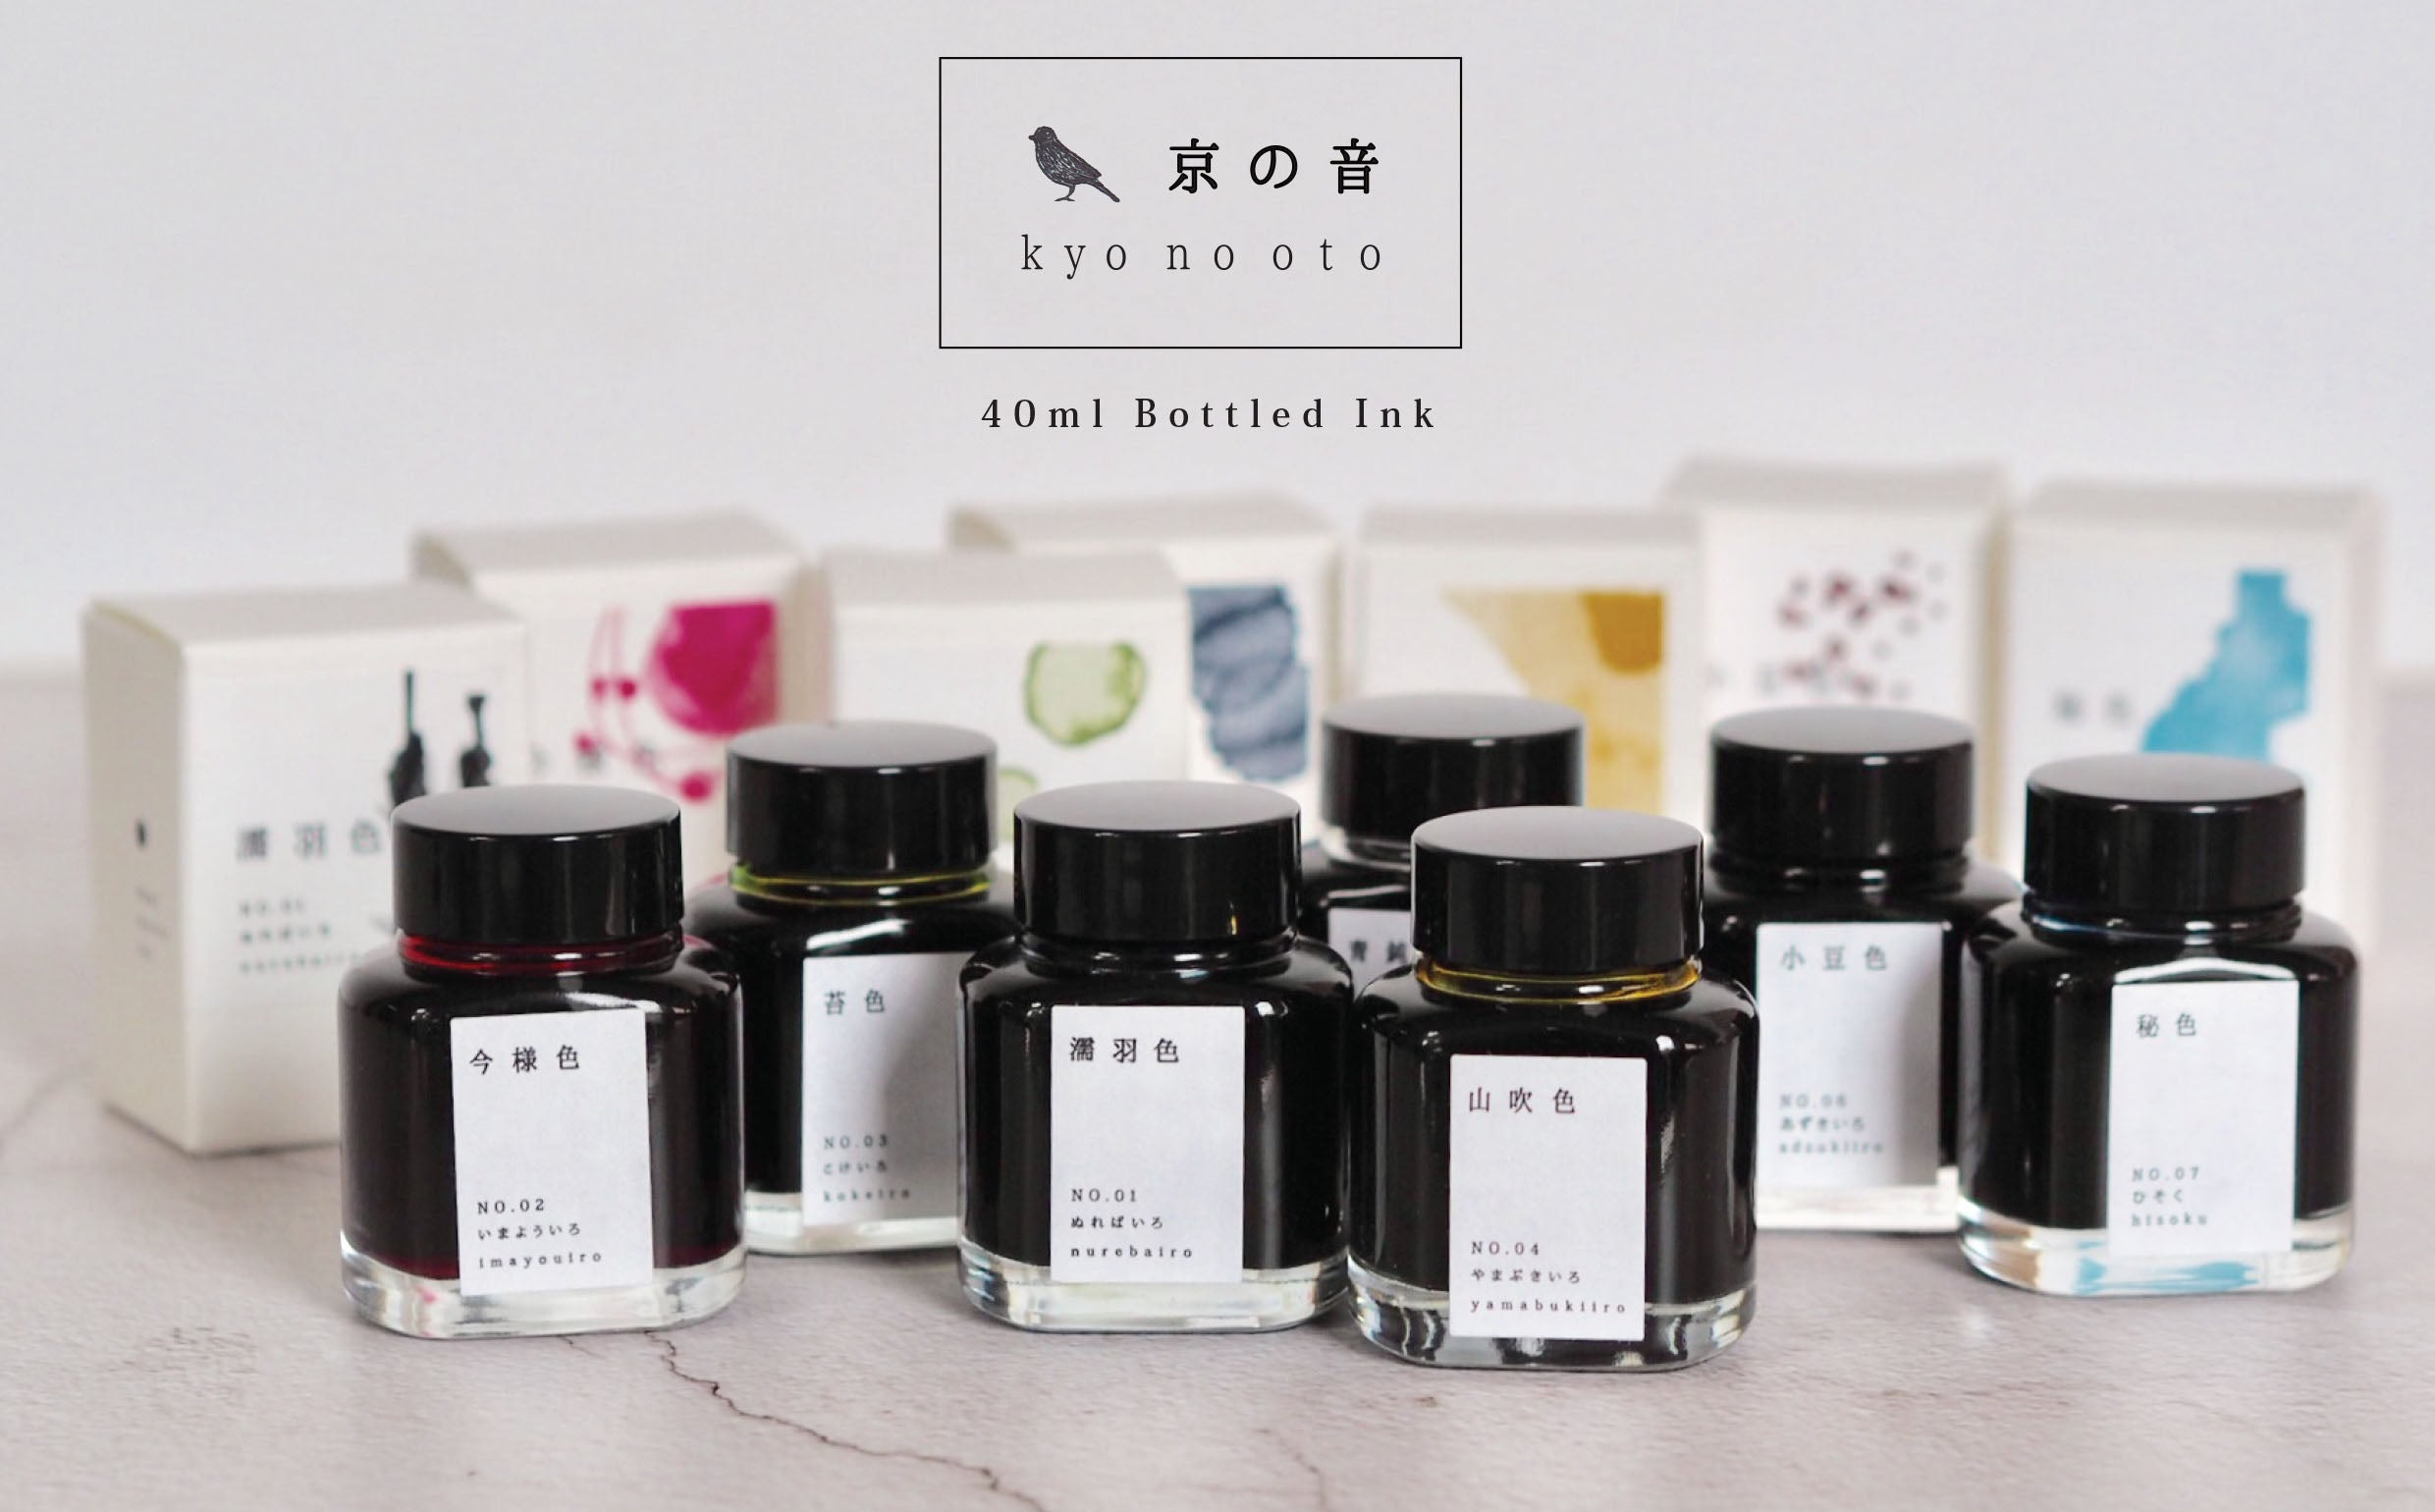 kyo no oto bottled ink